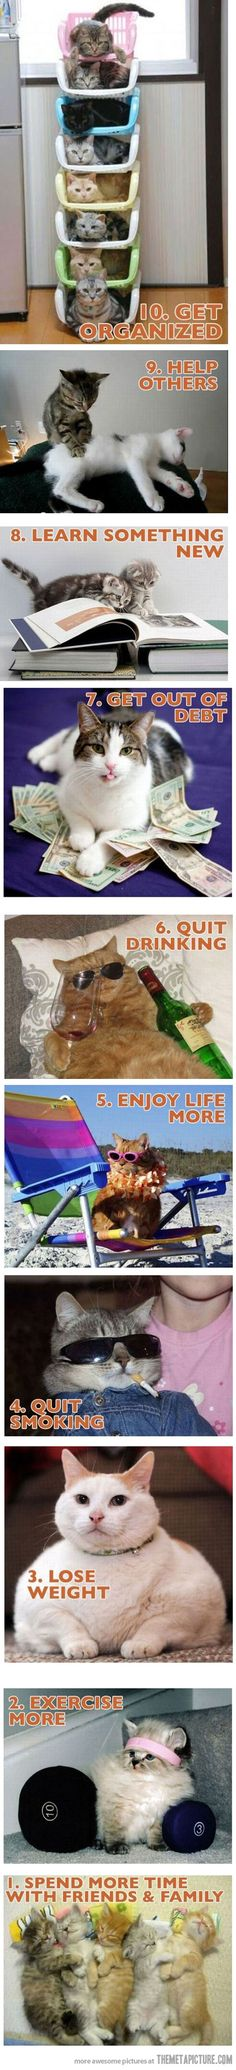 New year resolutions with cats